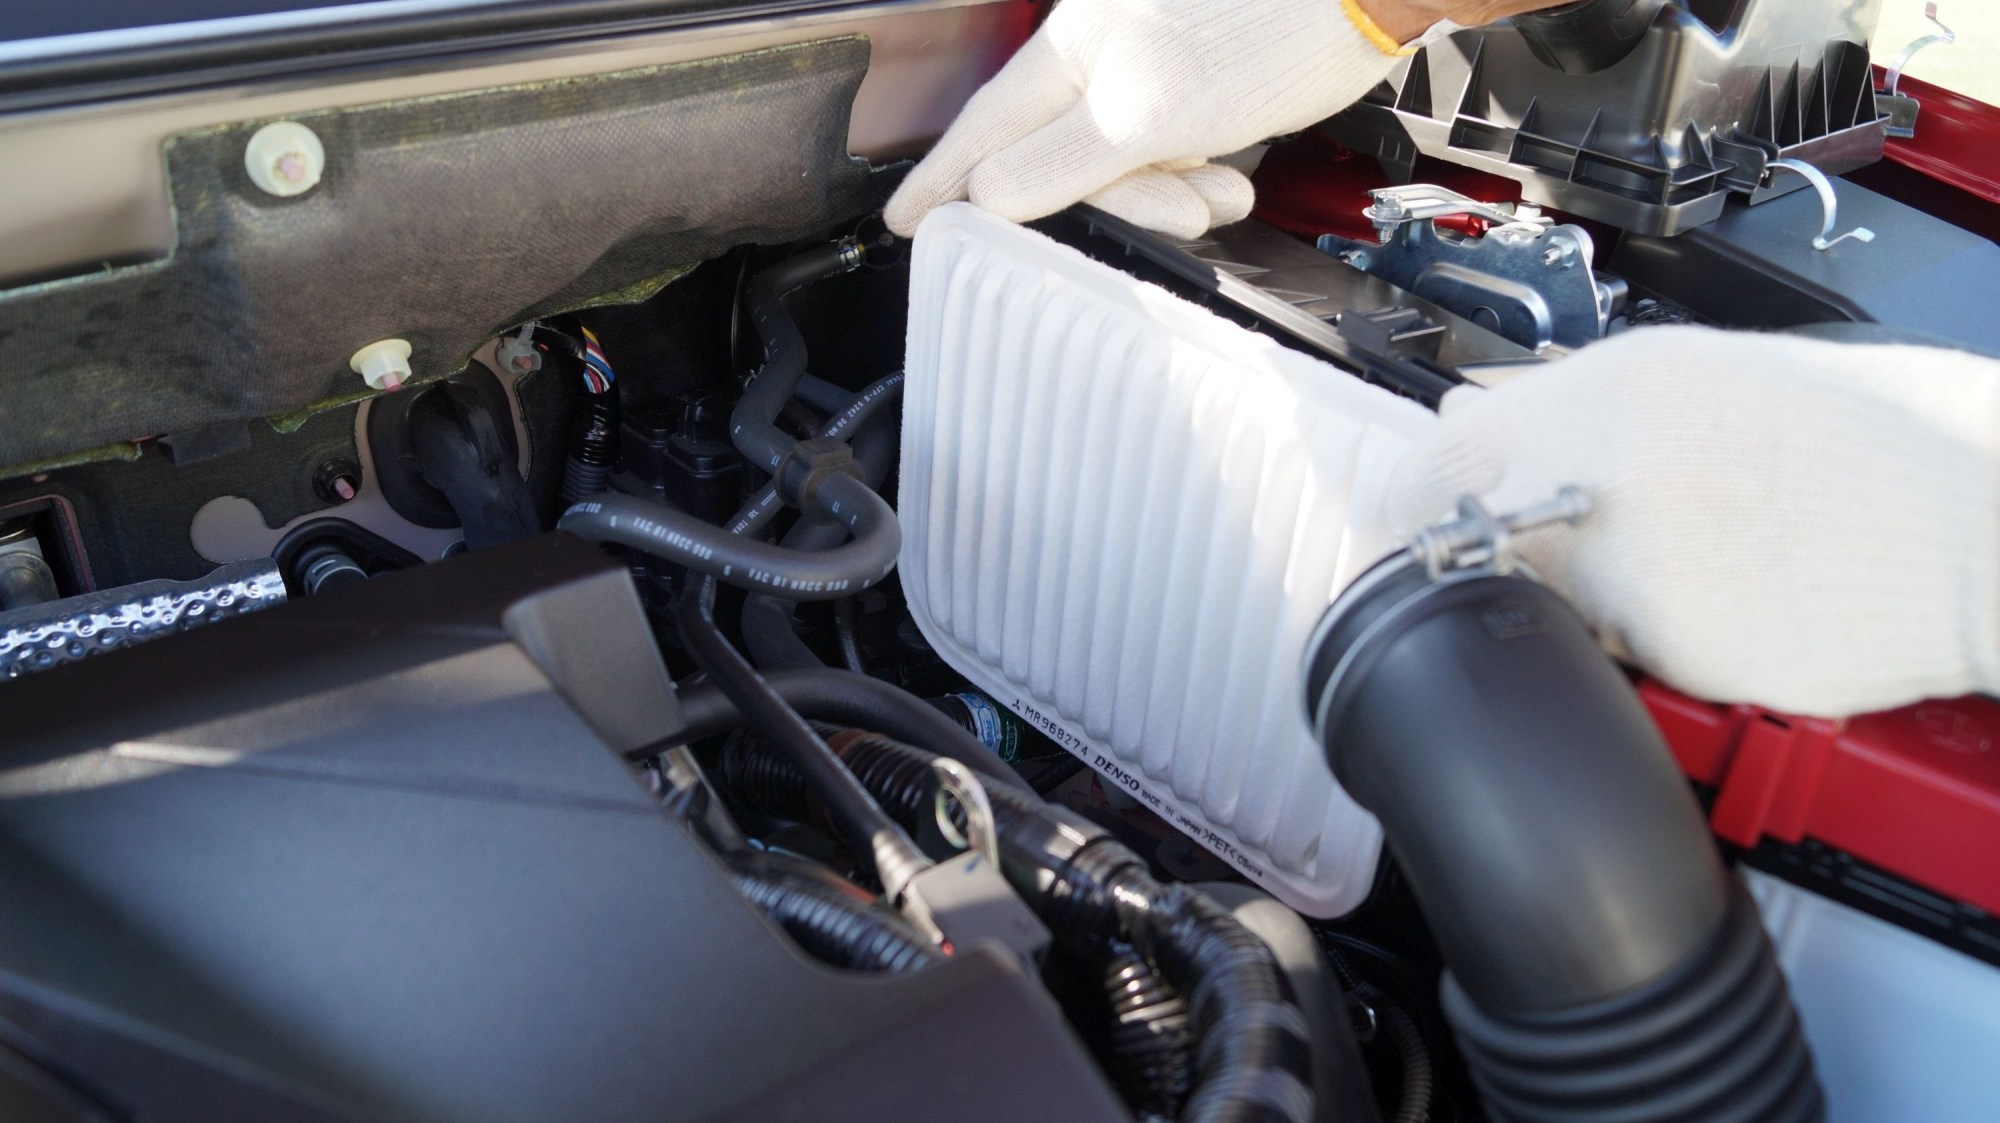 hight resolution of mitsubishi lancer engine diagram mitsubishi lancer air filter replacement of mitsubishi lancer engine diagram 2002 2007